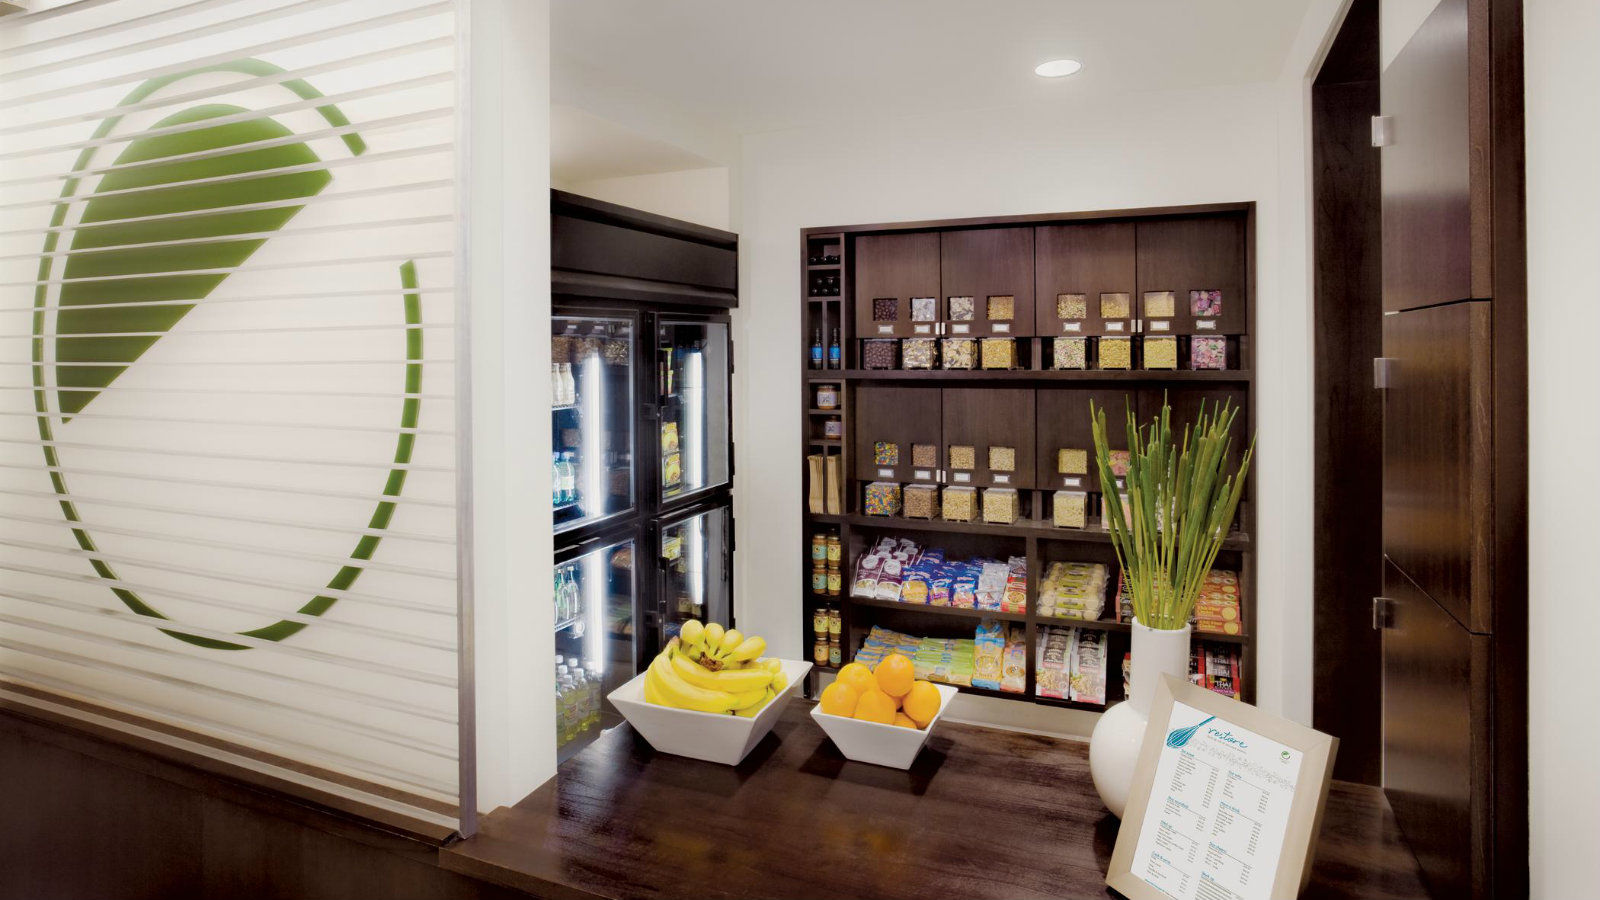 Dining Options - Restore gourmet pantry